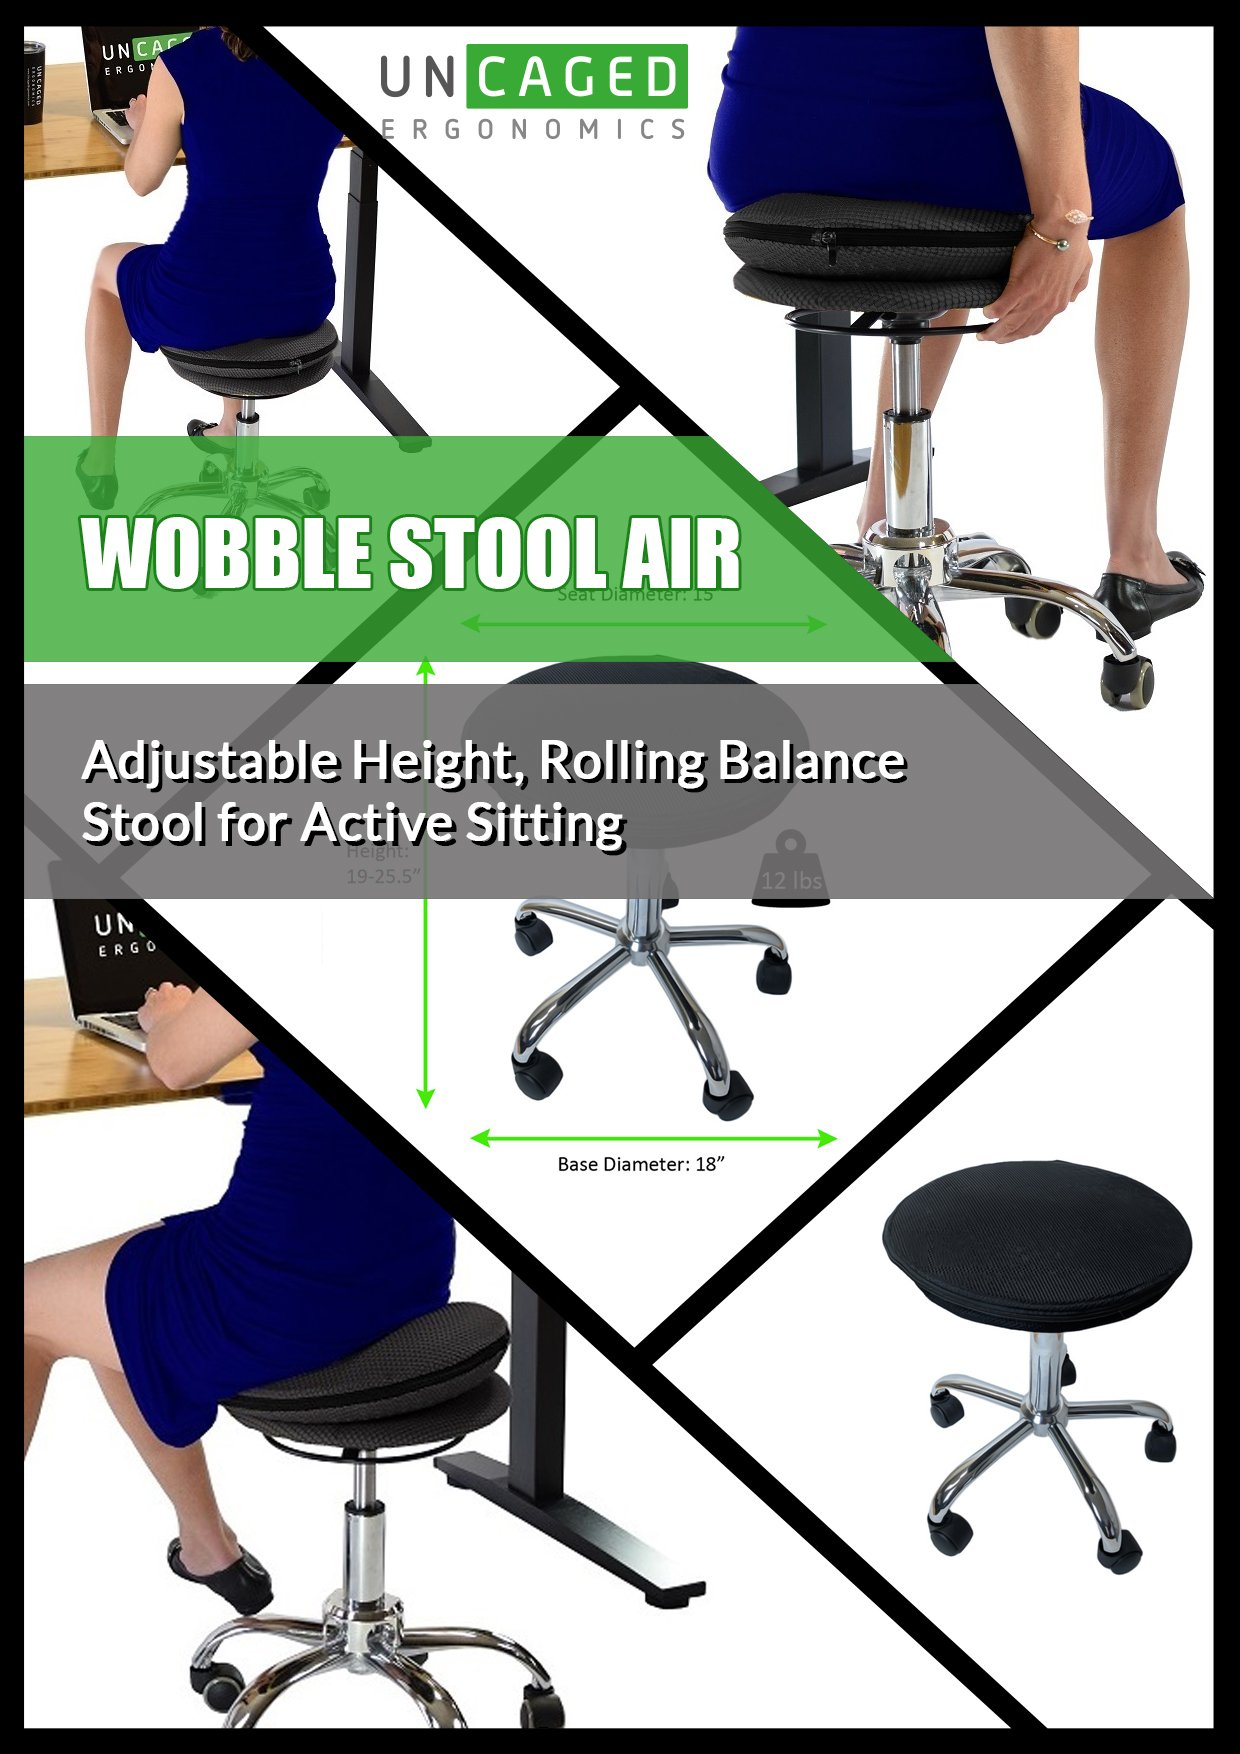 Uncaged Ergonomics WSA-b WOBBLE STOOL AIR Rolling Adjustable Height Active Sitting Balance Ball Office, Standing, Stand Up Desk Chair with Wheels Swivel Stable Rocking Tilting Black